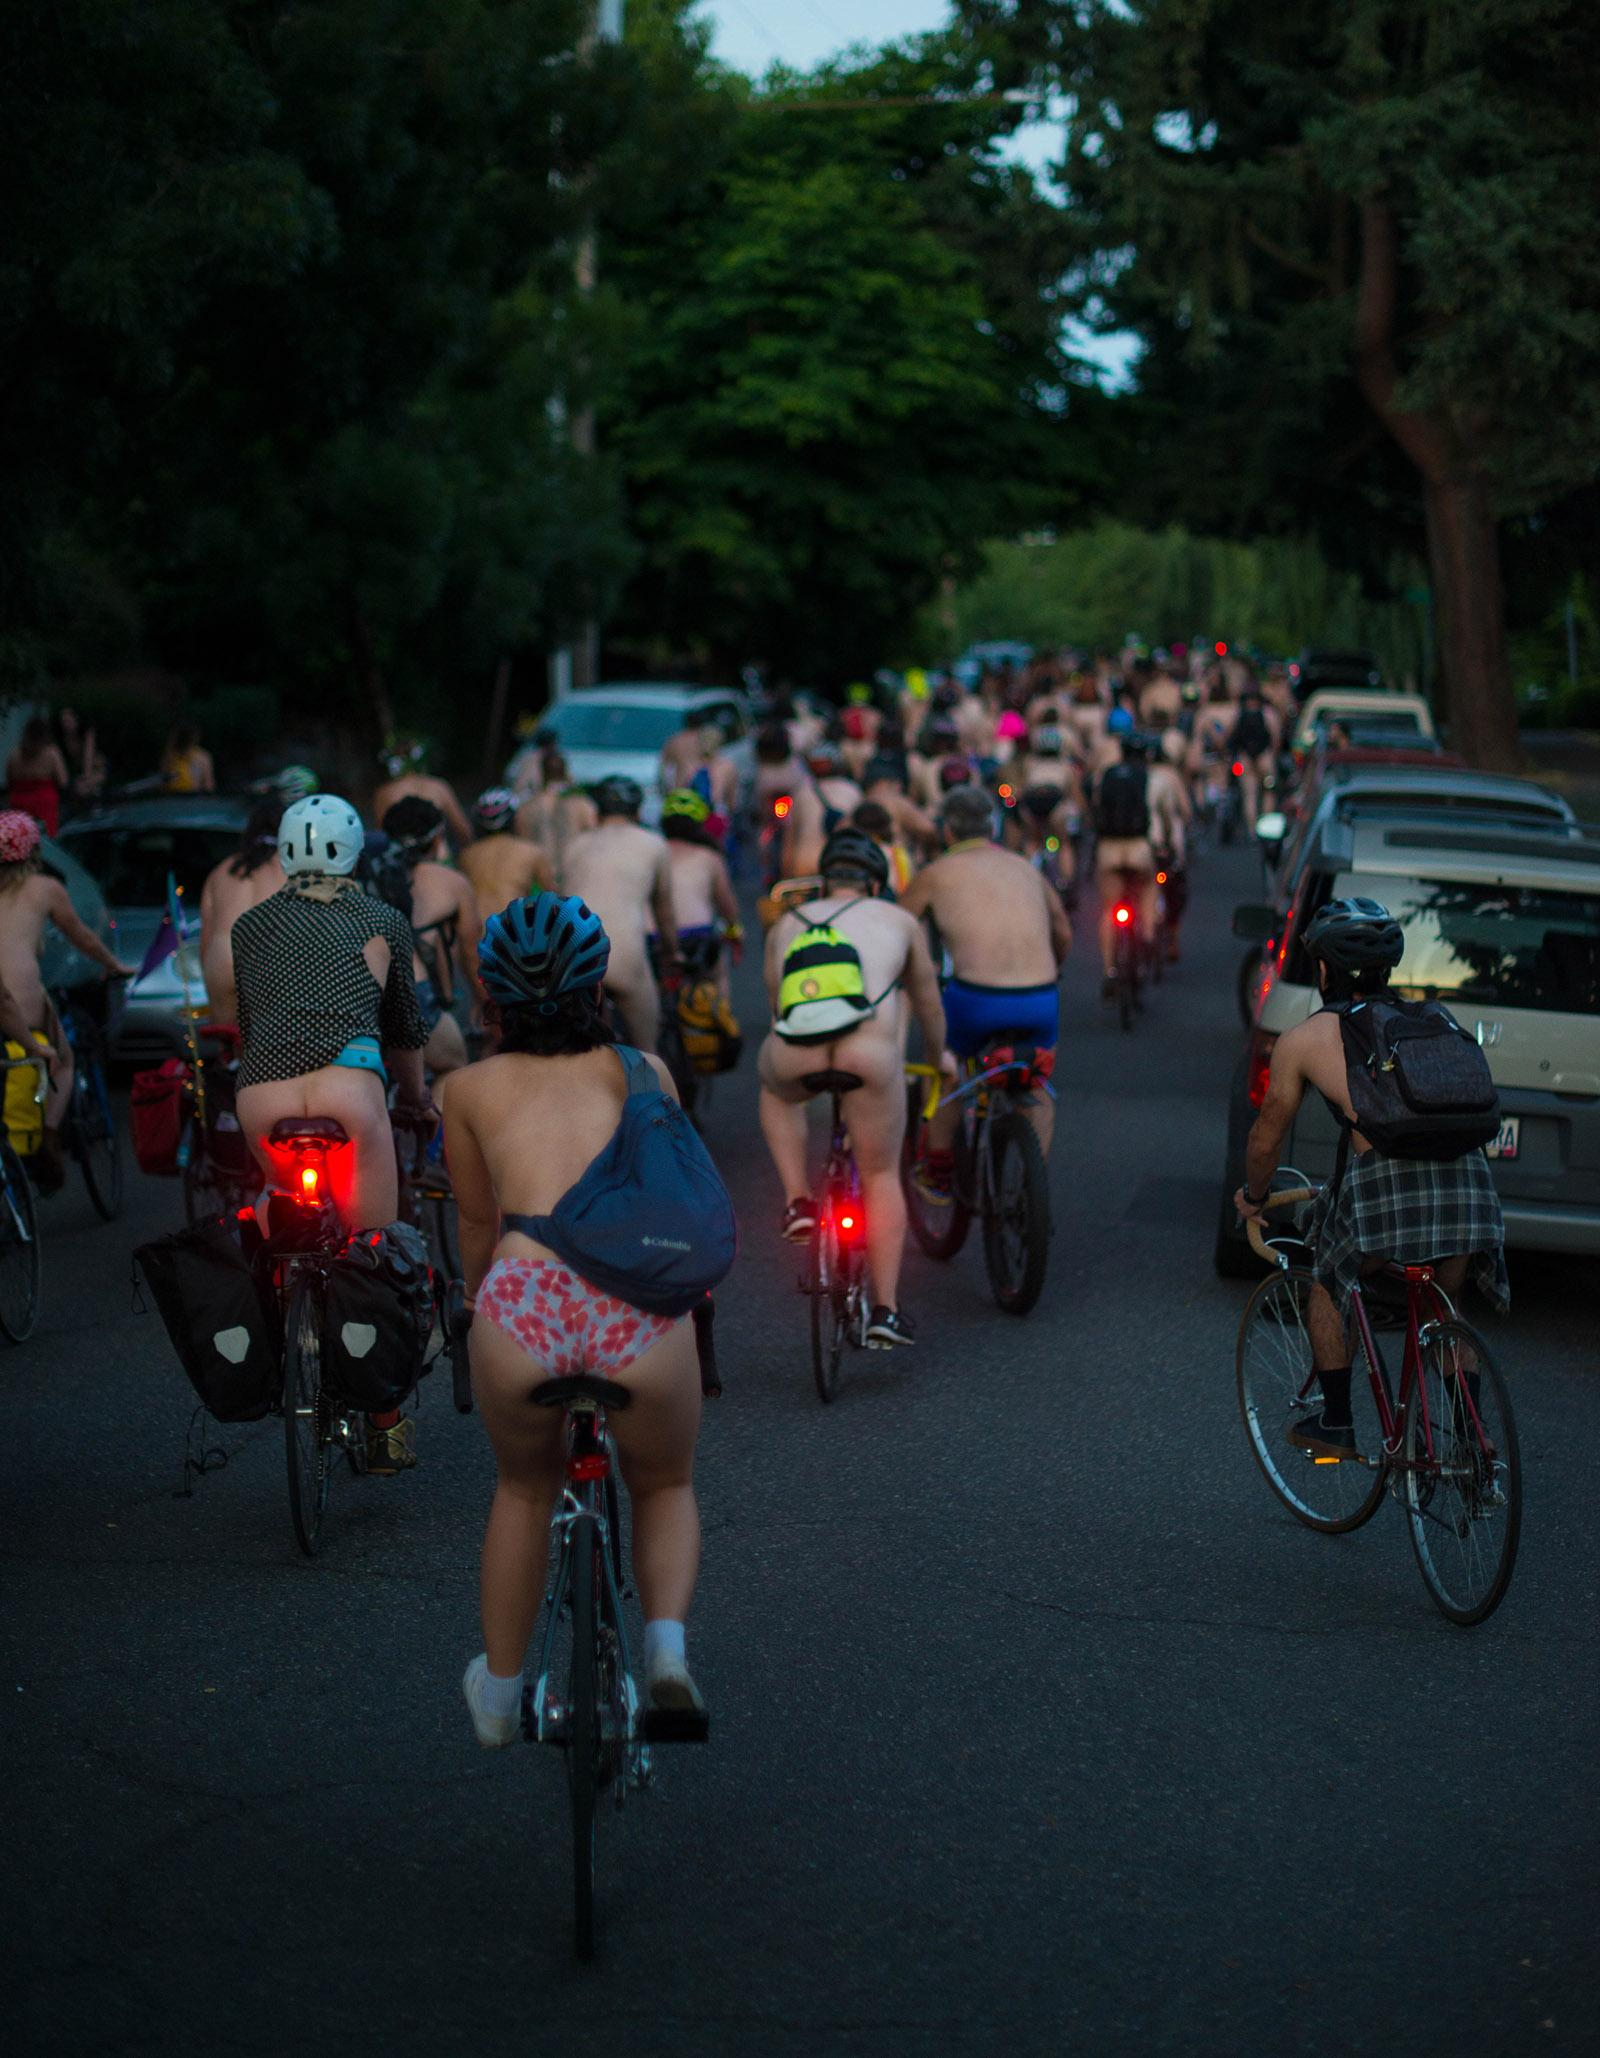 Bare bicyclists filled the streets of Portland on Saturday for the annual World Naked Bike Ride. The ride highlights the vulnerability of cyclists on the roads and global oil dependency, while also promoting body-positive messages. The group gathered in Cathedral Park before riding through the streets. (KATU photo taken 6-23-2018 by Tristan Fortsch)